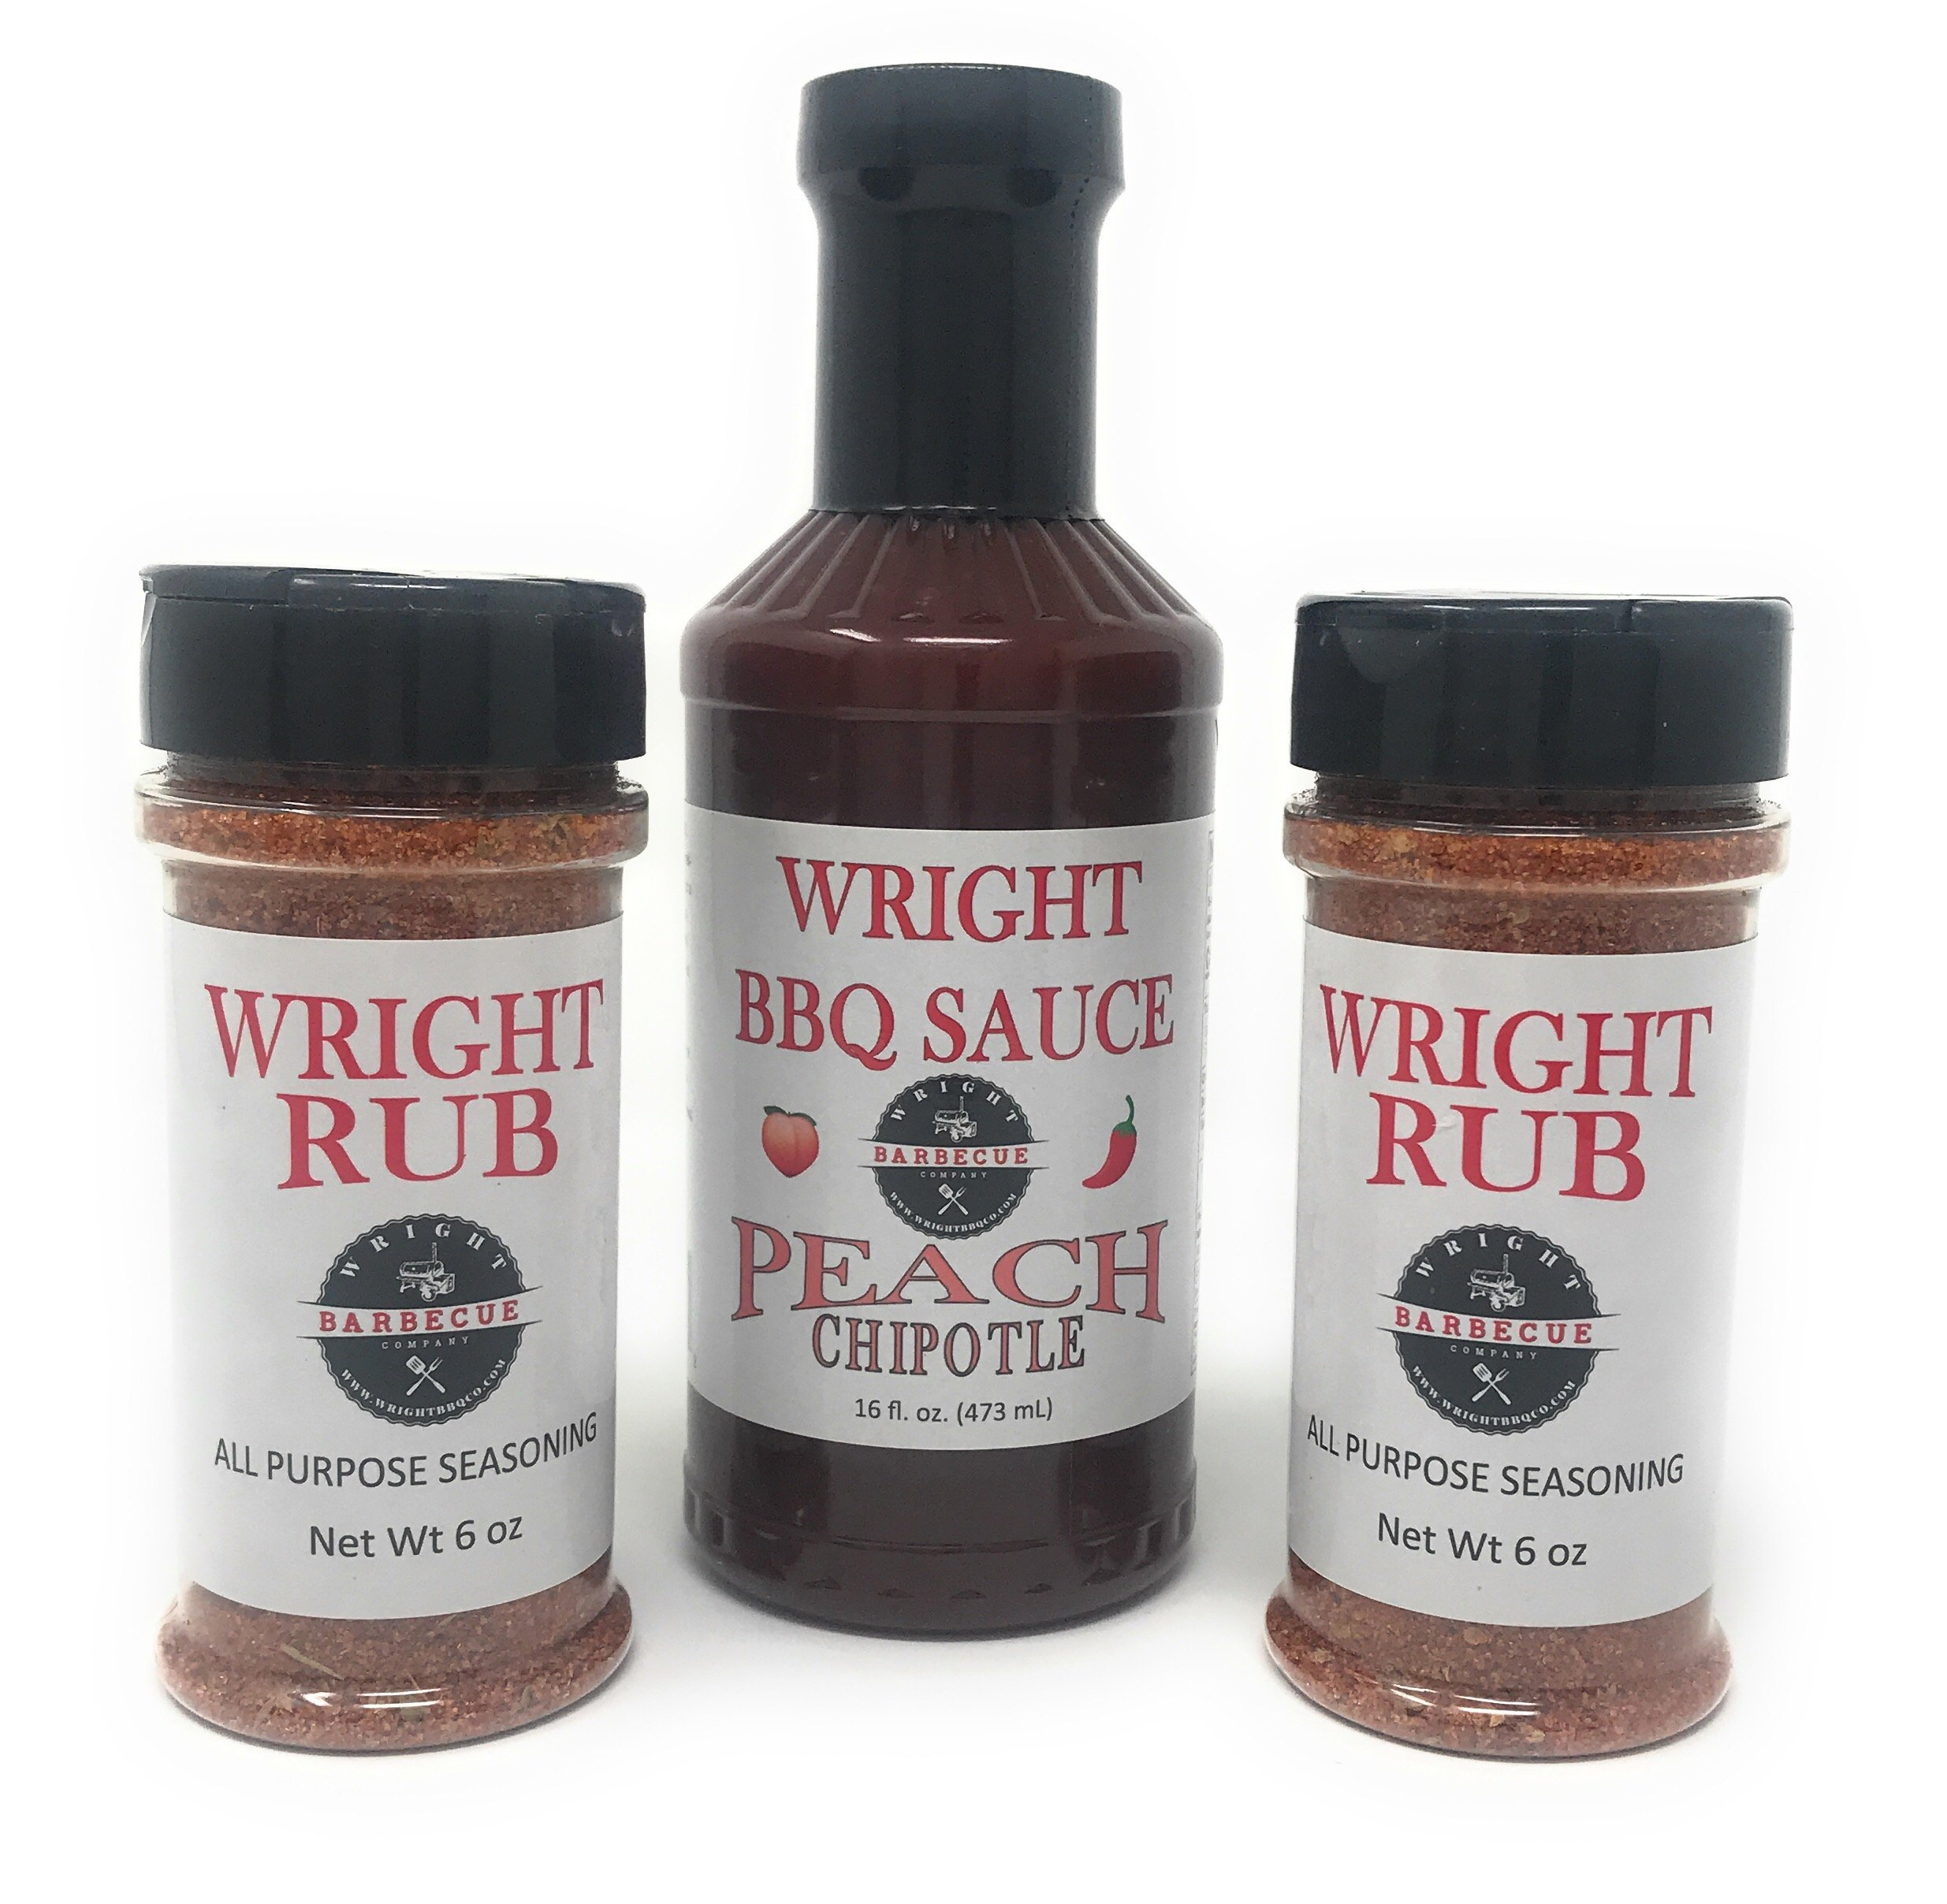 Wright BBQ Company - All Purpose Seasoning (Two 6 Ounce Bottles) and Peach Chipotle Barbecue Sauce (One 16 Ounce Bottle) 3 Items Total